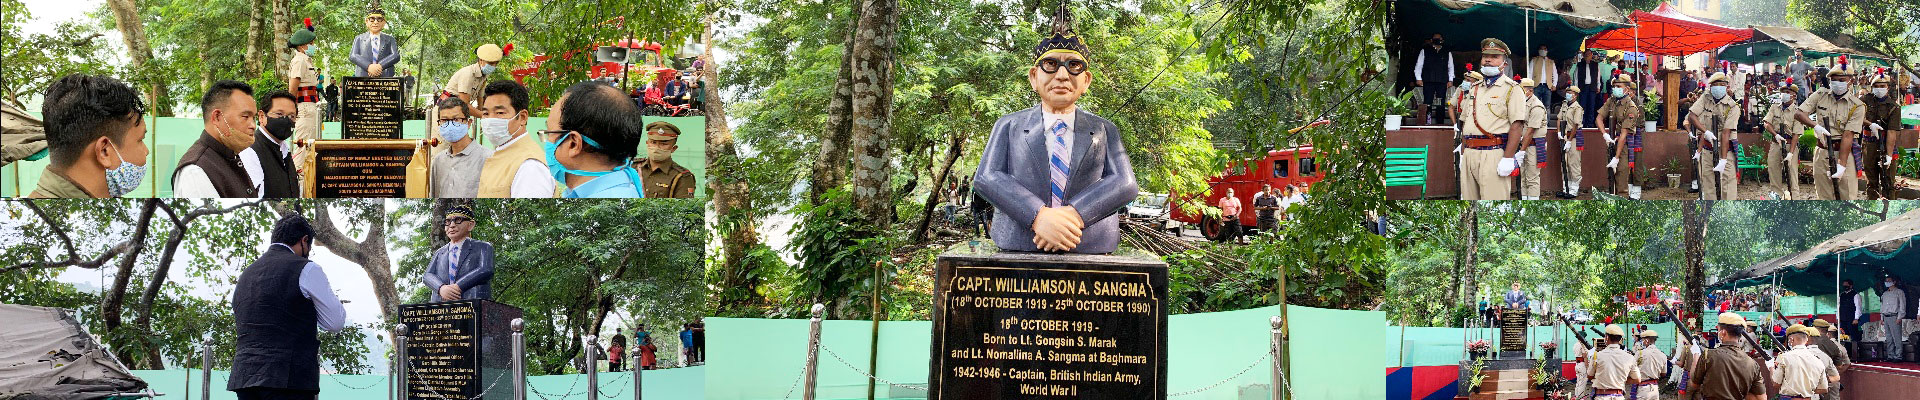 CM unveiled the new bust of Captain Williamson A. Sangma at Baghmara